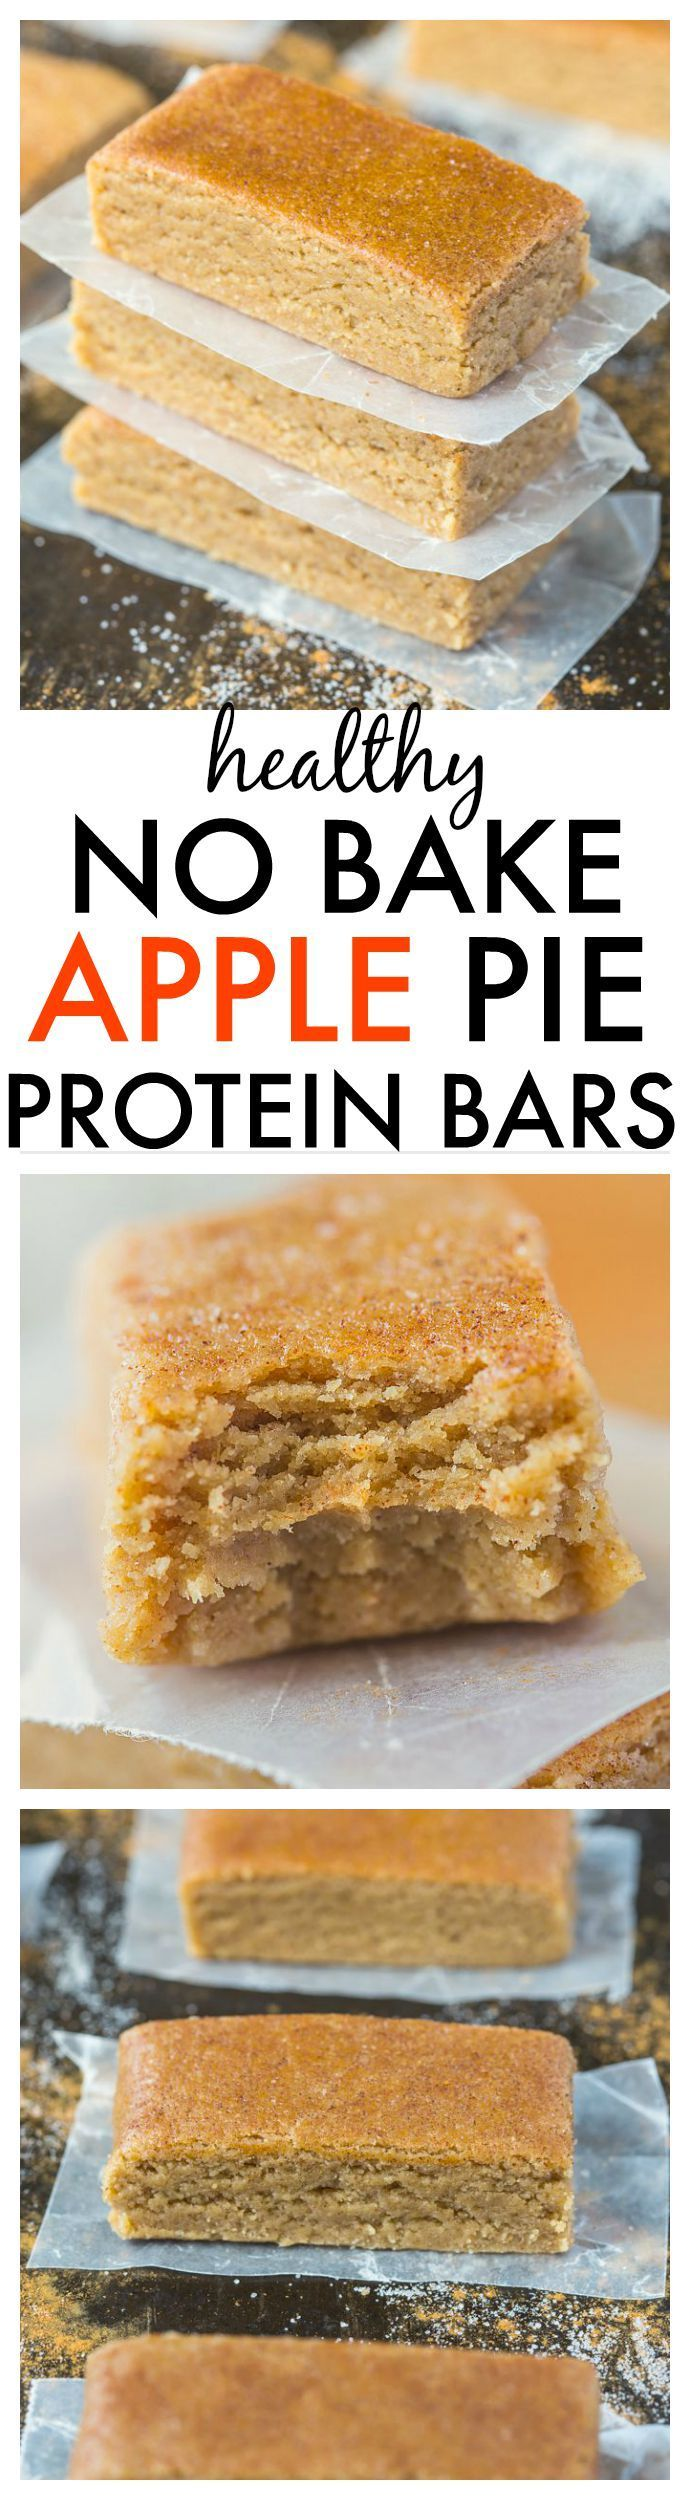 Healthy No Bake Apple Pie Protein Bars (vegan, gluten free, refined sugar free + paleo option)